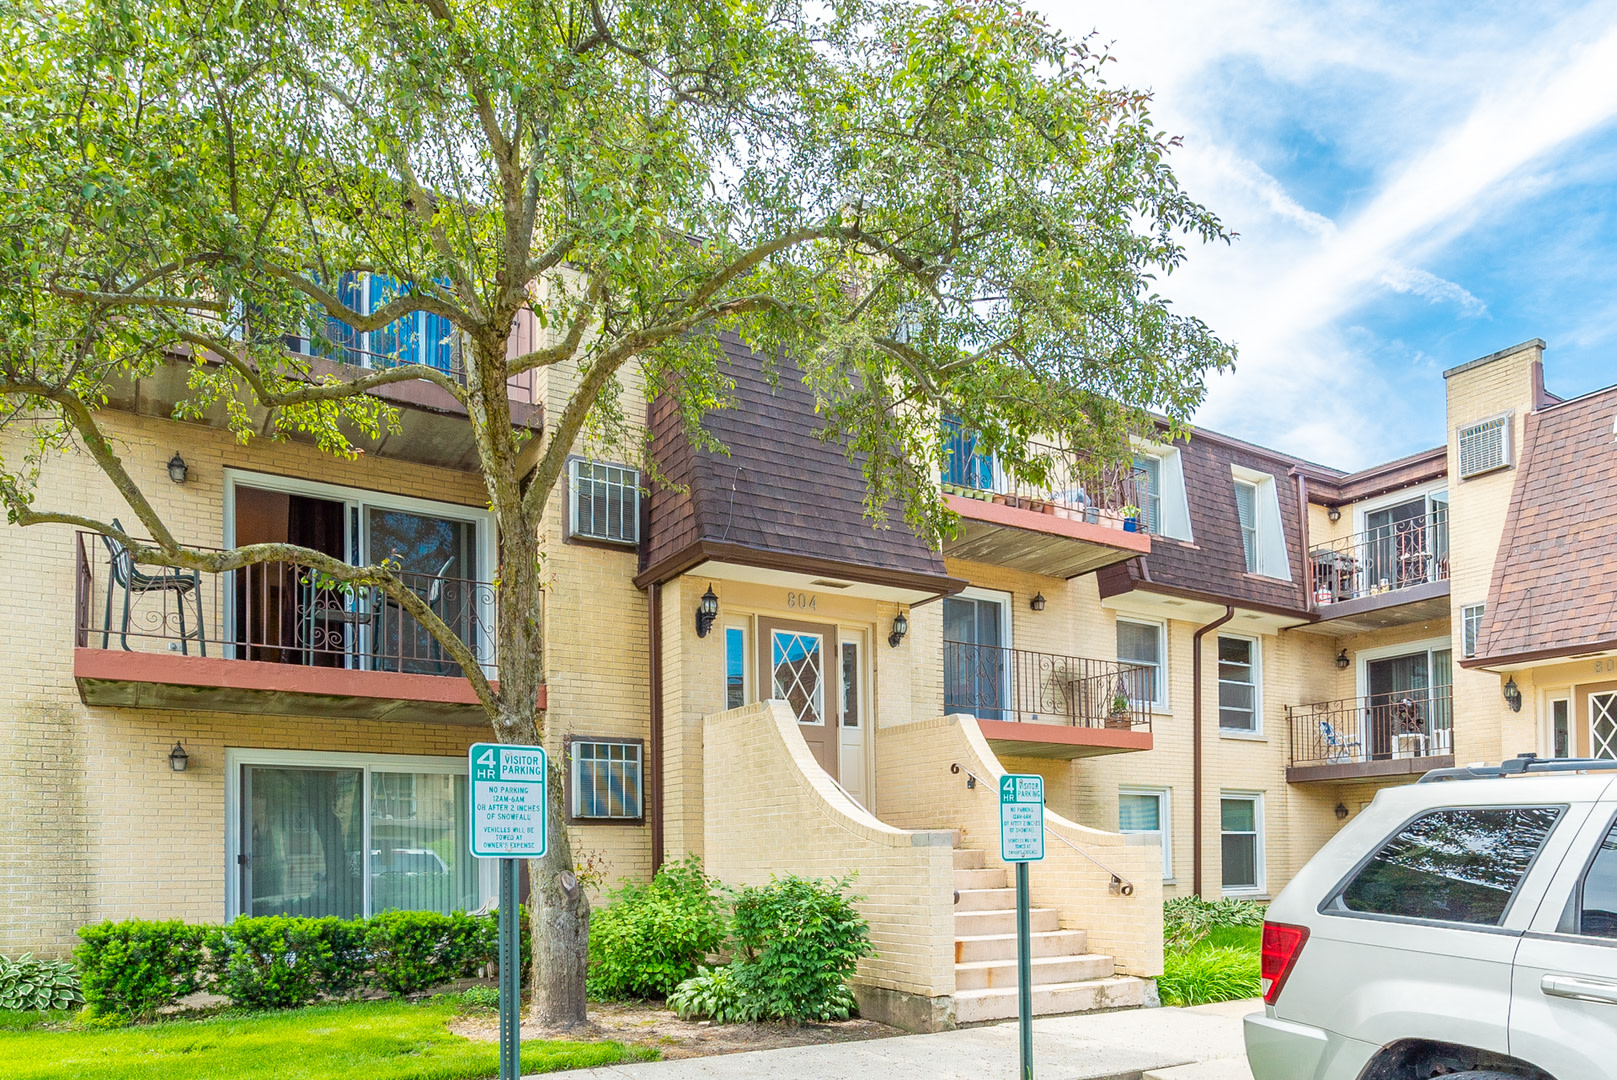 20 Best Apartments In Mount Prospect, IL (with pictures)!